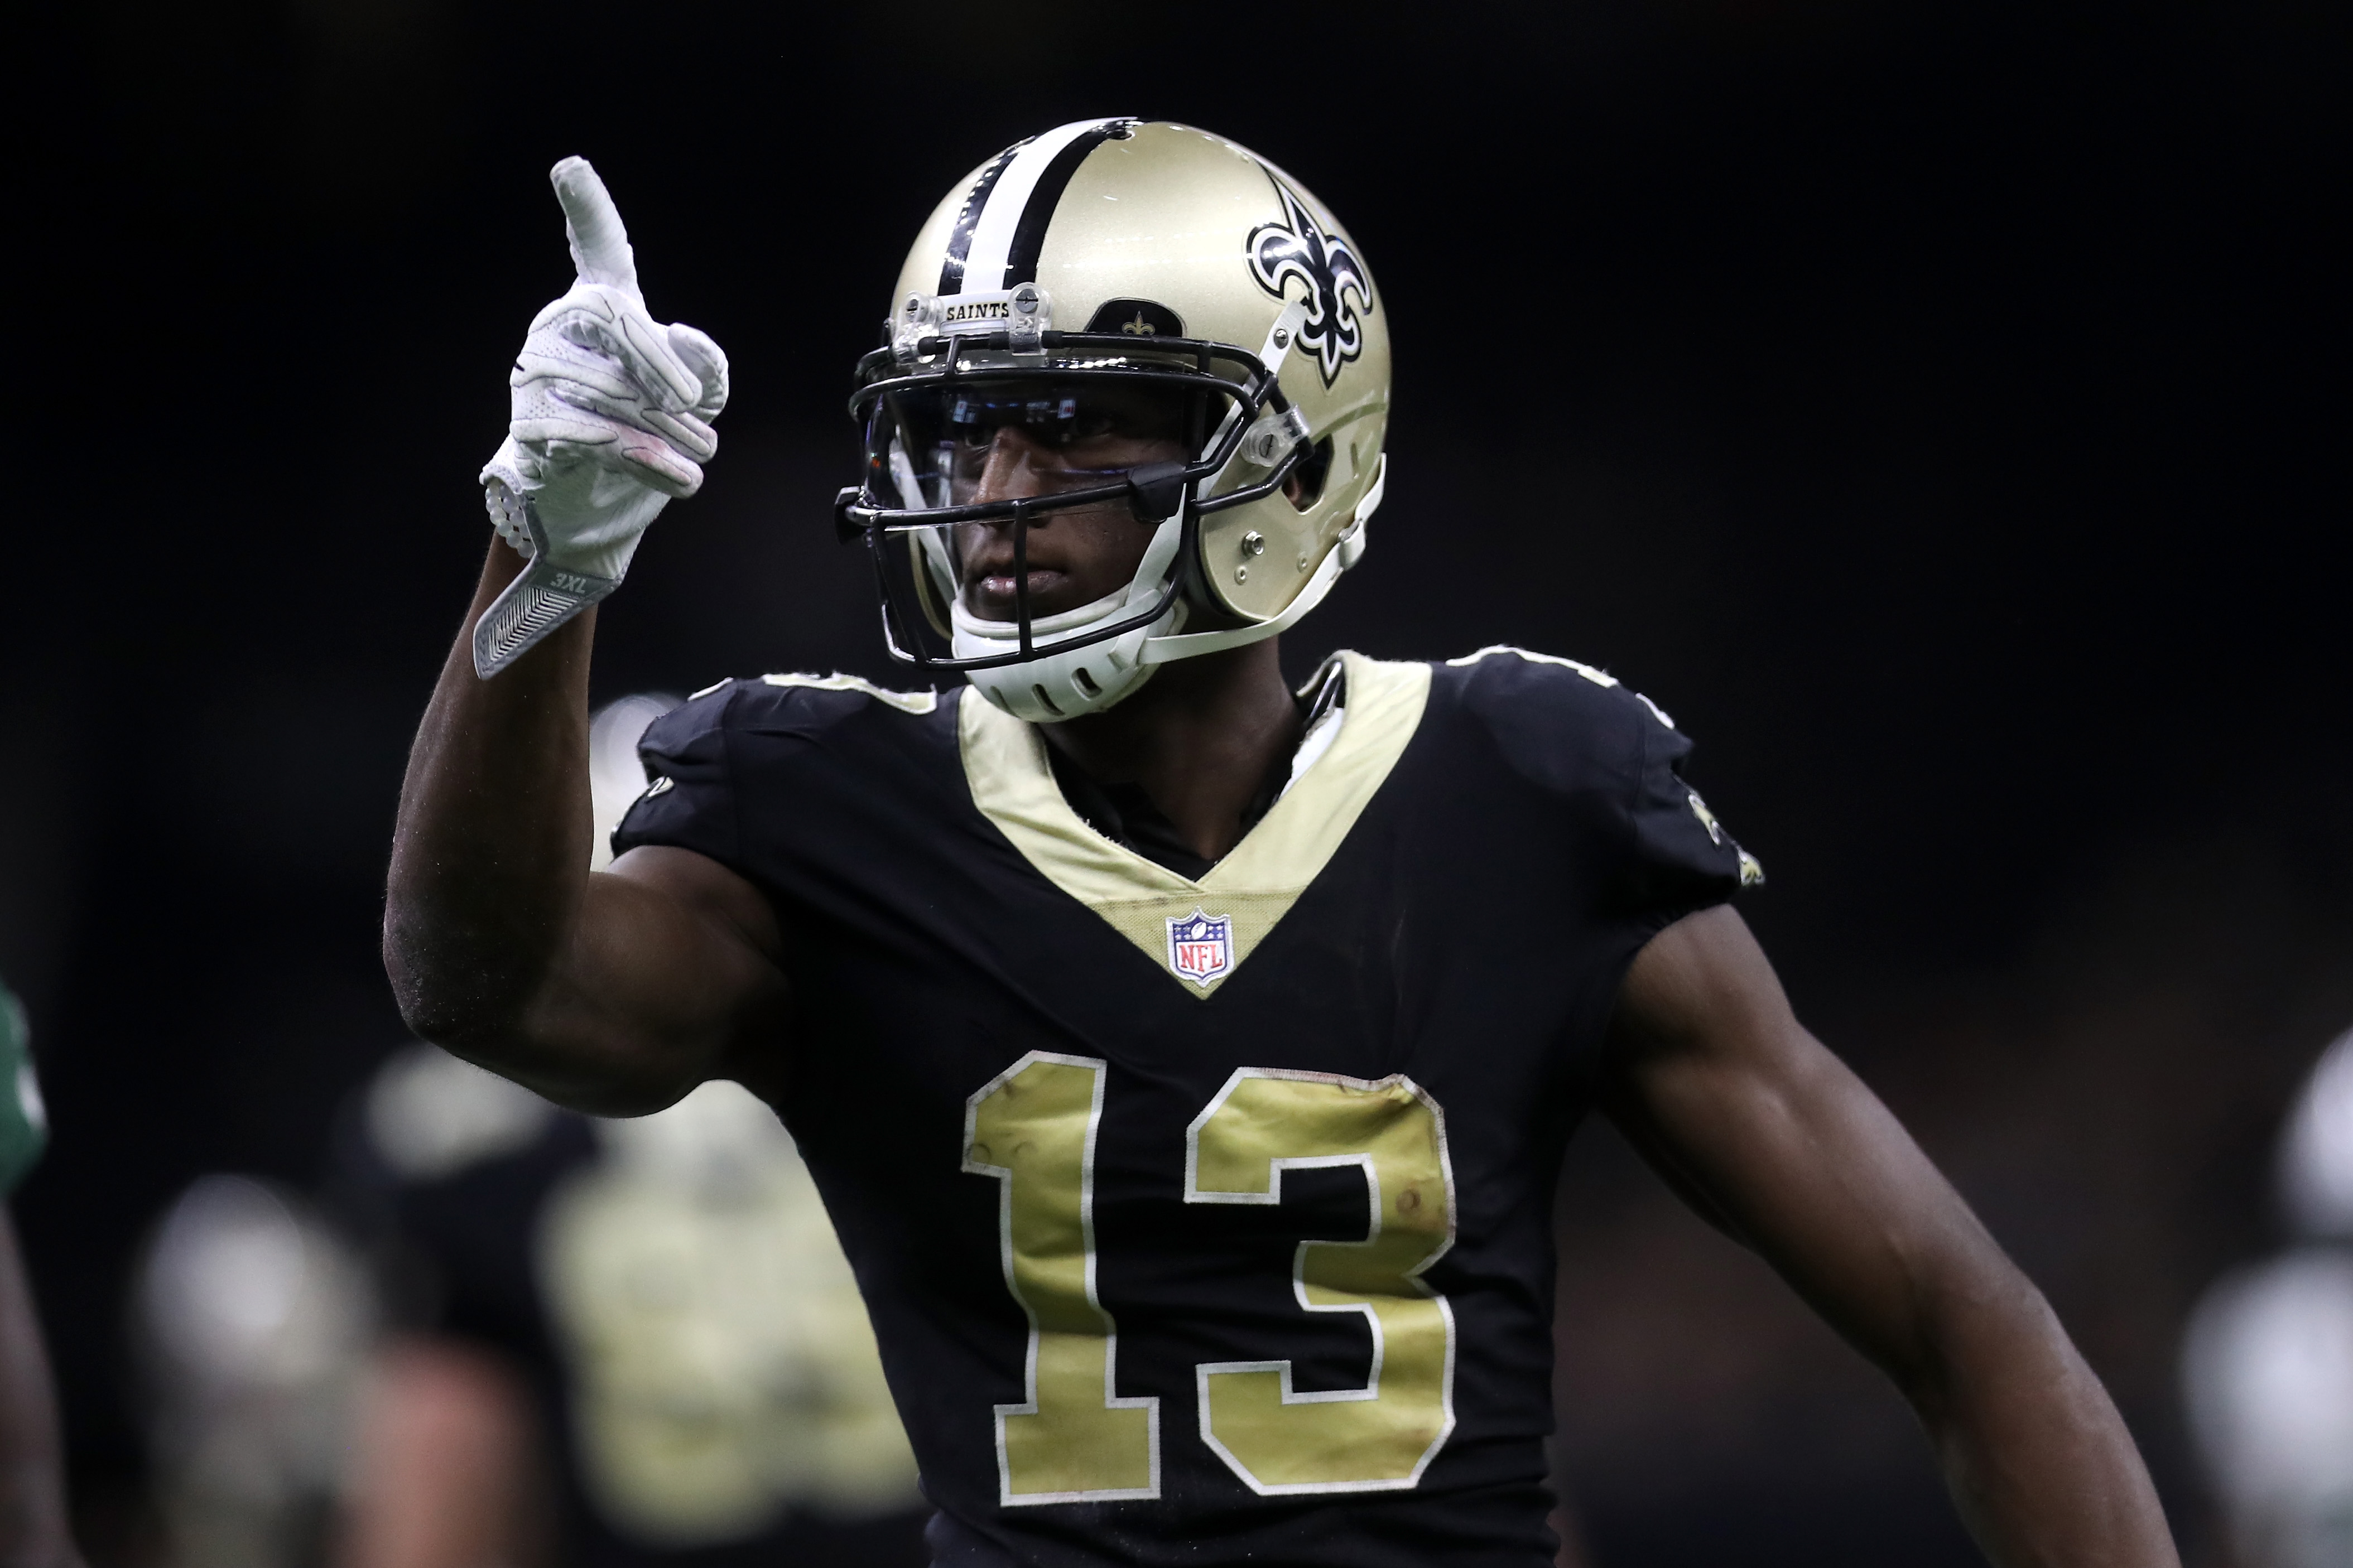 The New Orleans Saints. My other favorate team after the 9ers. I ...